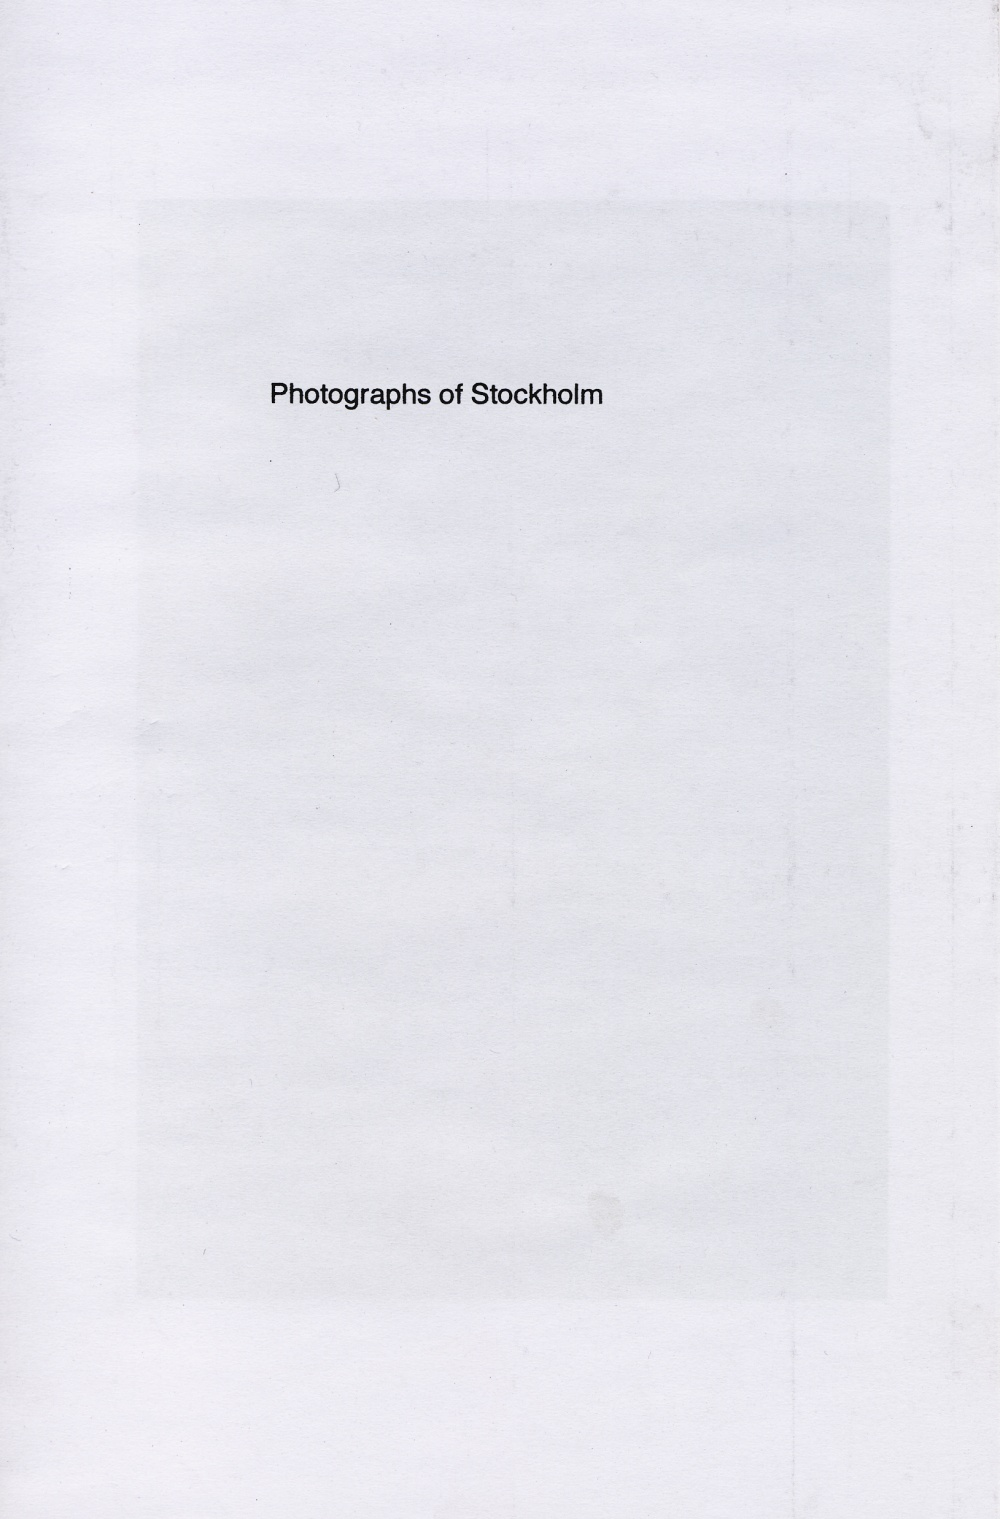 Photographs of Stockholm - Foerster, Ryan